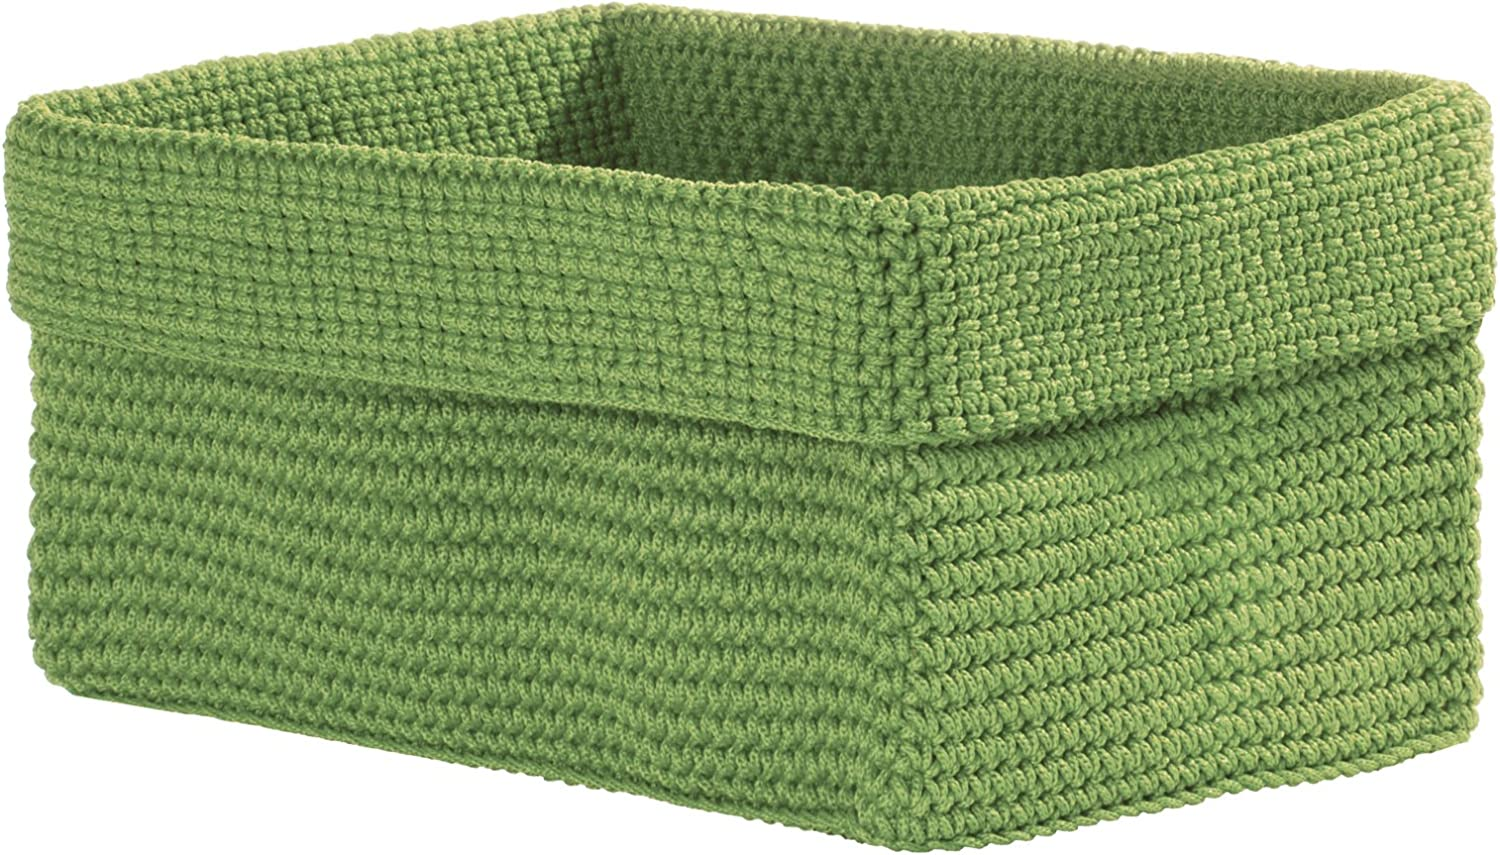 Heritage Lace Mode Crochet Basket, 10 by 6 by 7-Inch, Sage